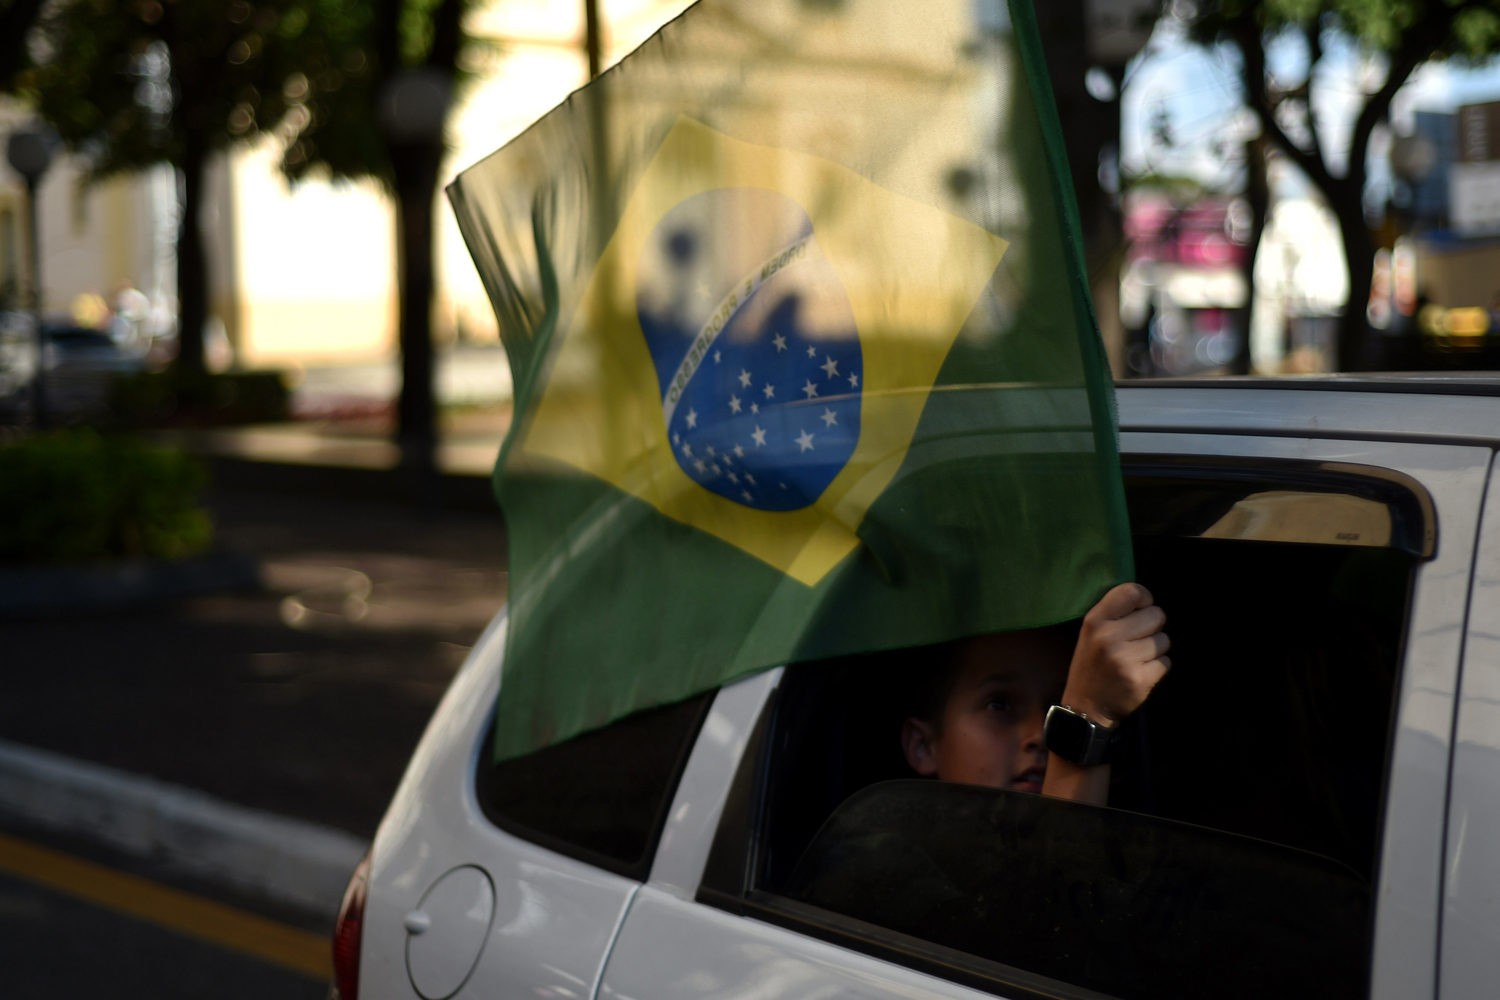 Jun. 12, 2014. A supporters of the Brazilian national football team holds a Brazilian flag out of a car window in Itu prior to the opening match of the 2014 FIFA World Cup between Brazil and Croatia being played at the Corinthians Arena in Sao Paulo.